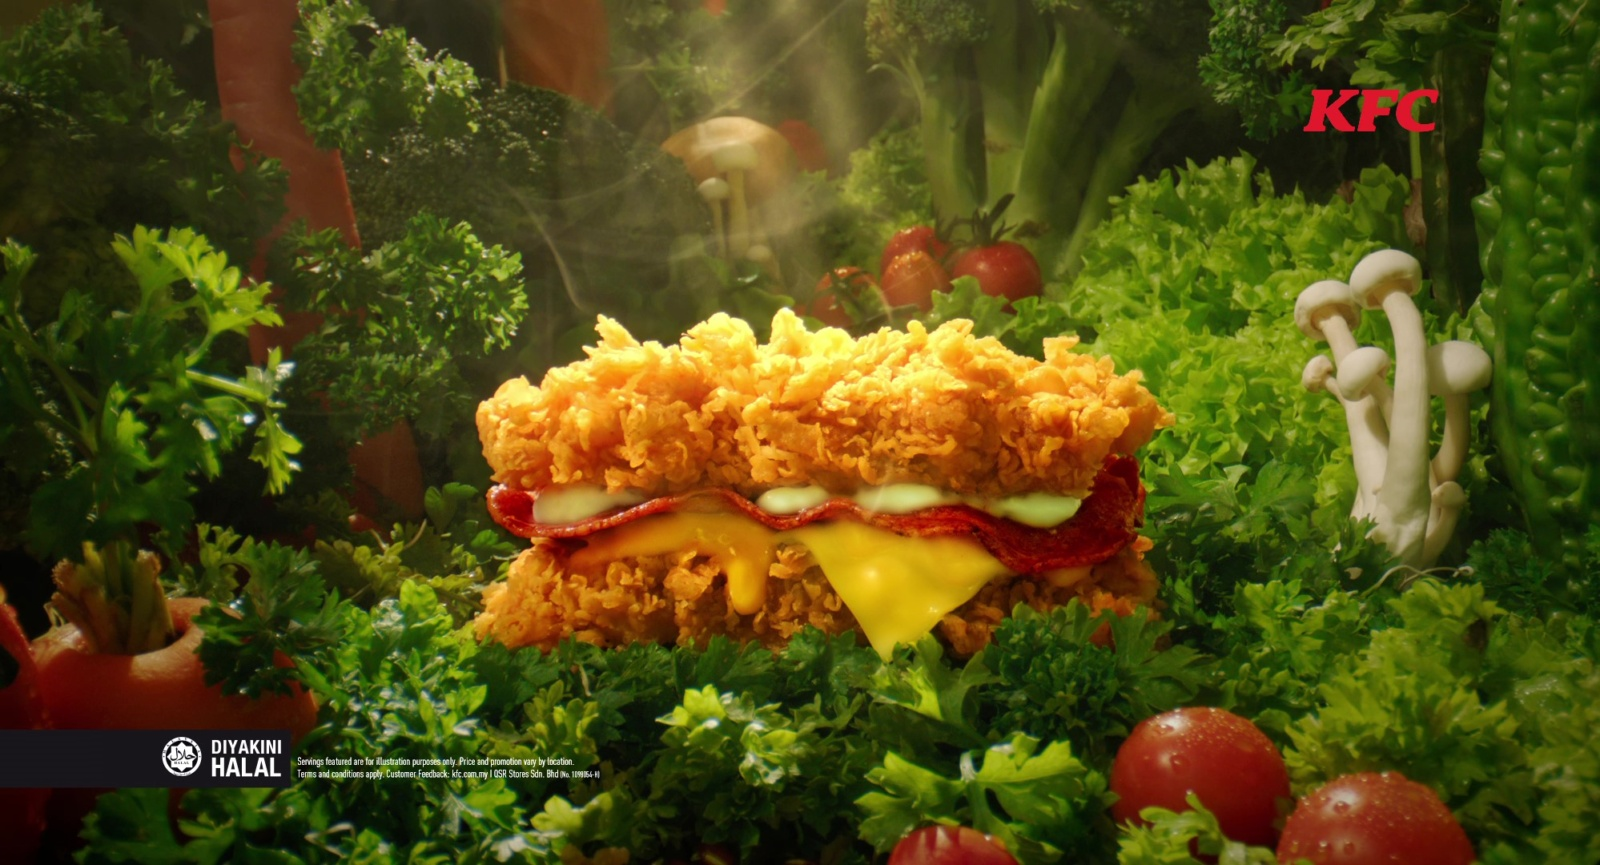 KFC Malaysia is Bringing Back The Zinger Double Down Starting 27 August For a Limited Time Only - WORLD OF BUZZ 1